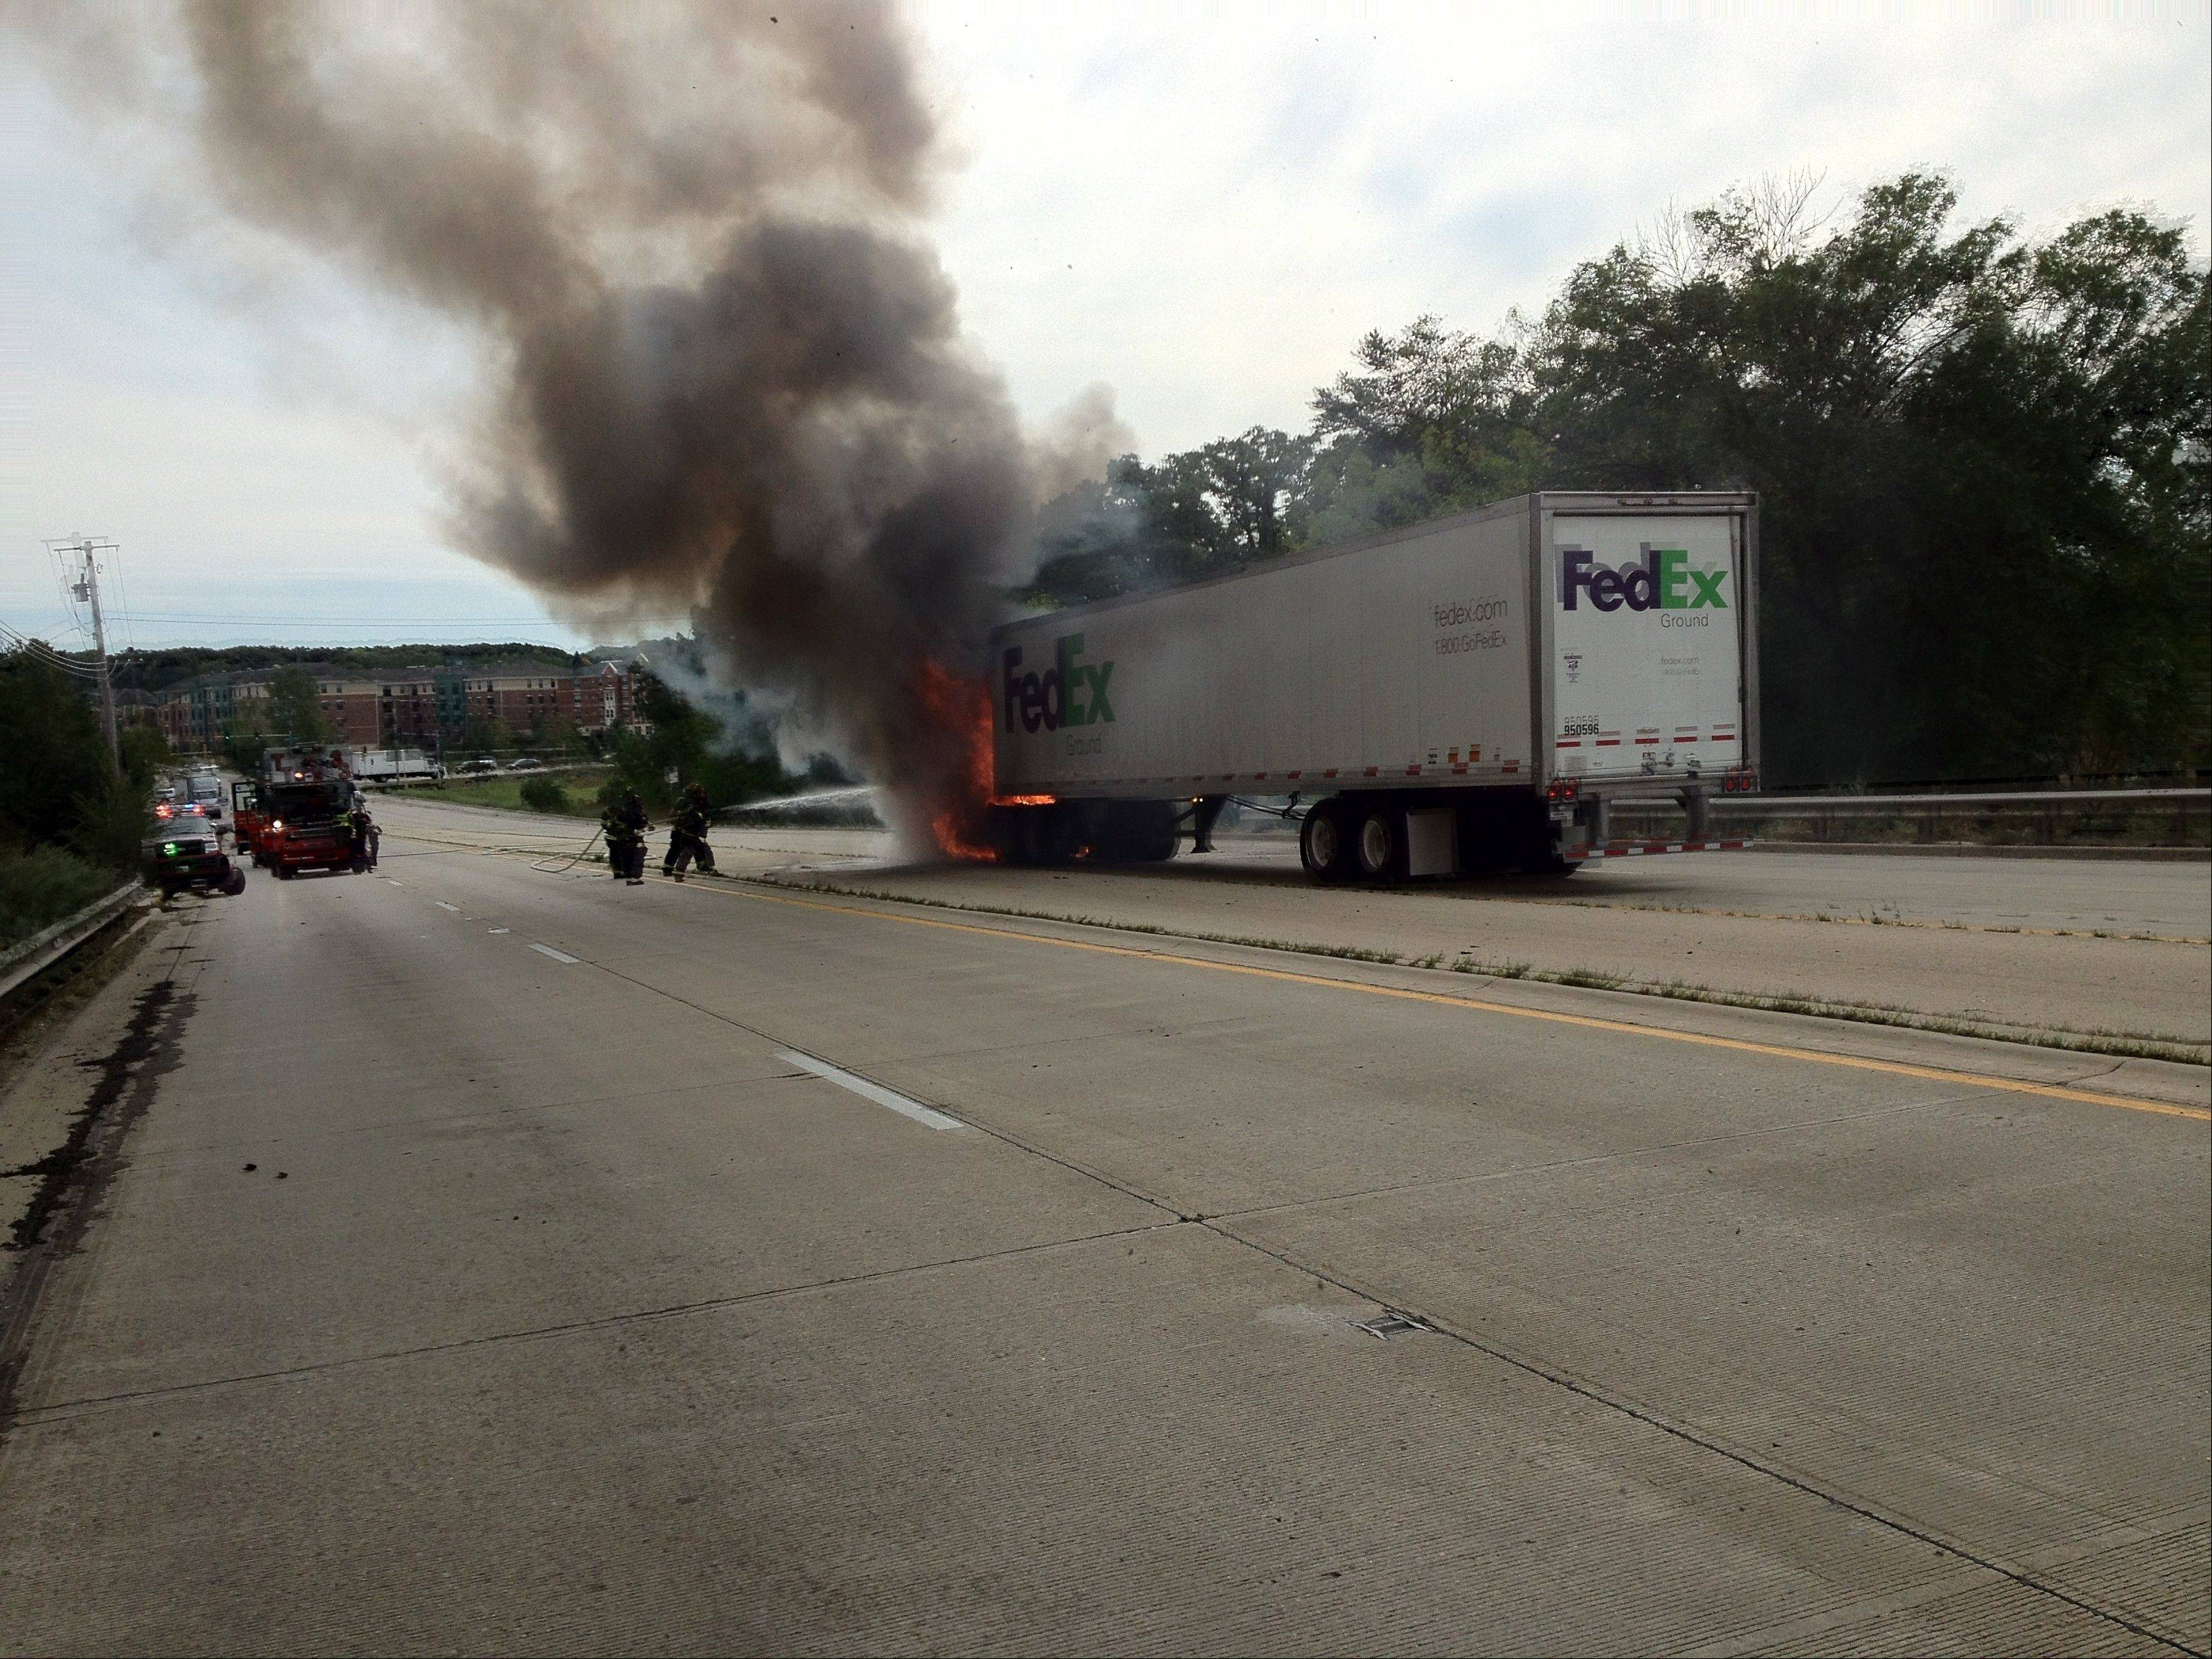 Bartlett Fire Protection District firefighters extinguished a truck fire Friday on Route 59.